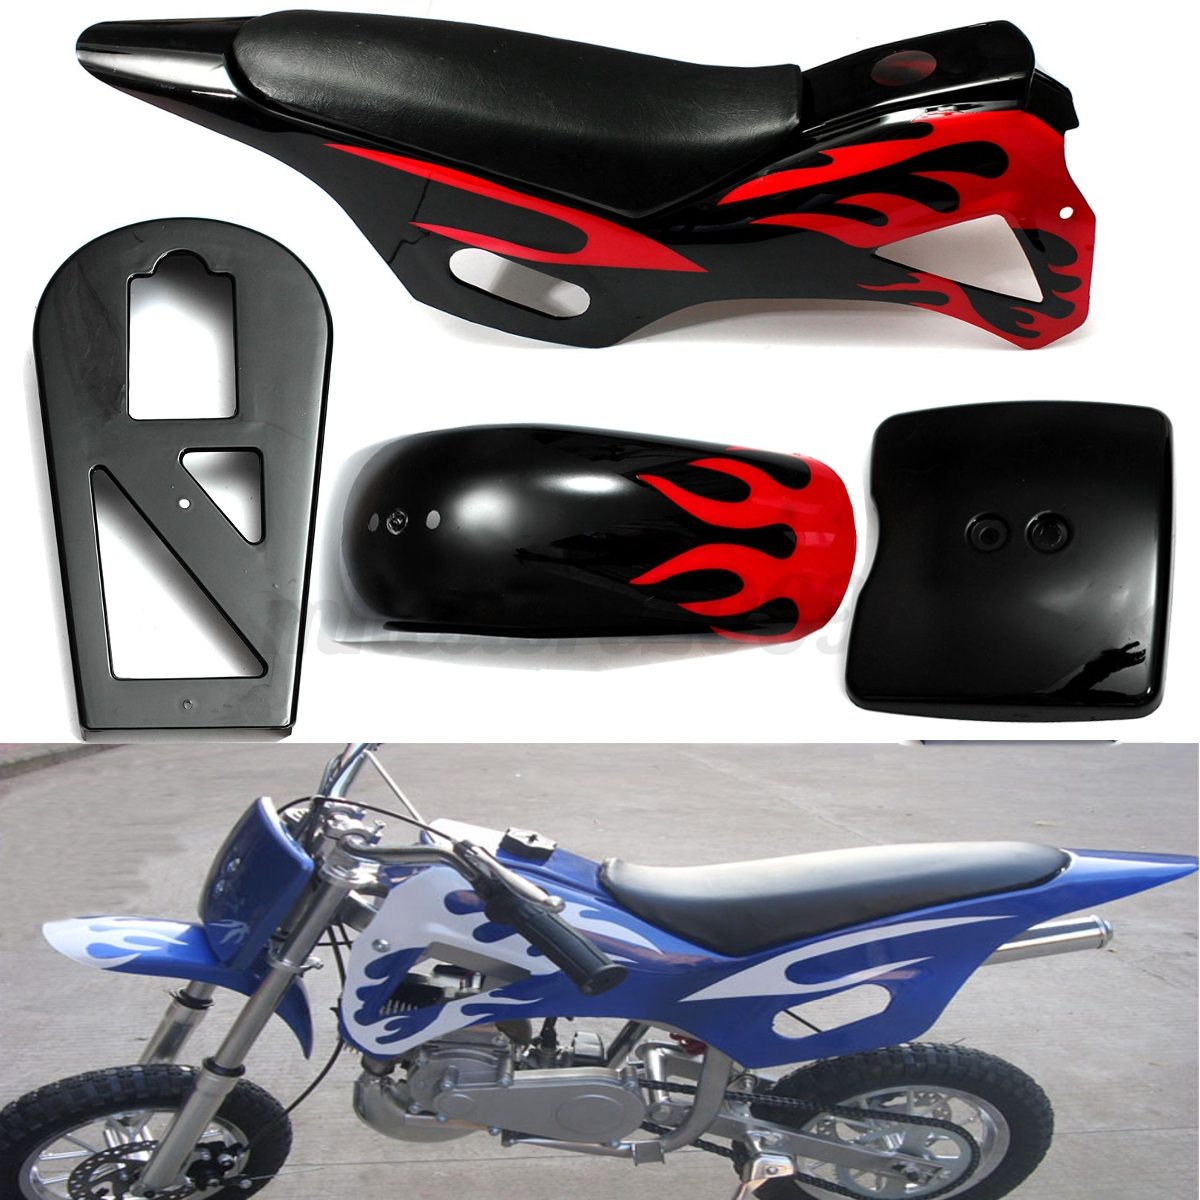 49cc mini motor dirt bike atv fairing plastics kit 5 piece with seat black red ebay. Black Bedroom Furniture Sets. Home Design Ideas